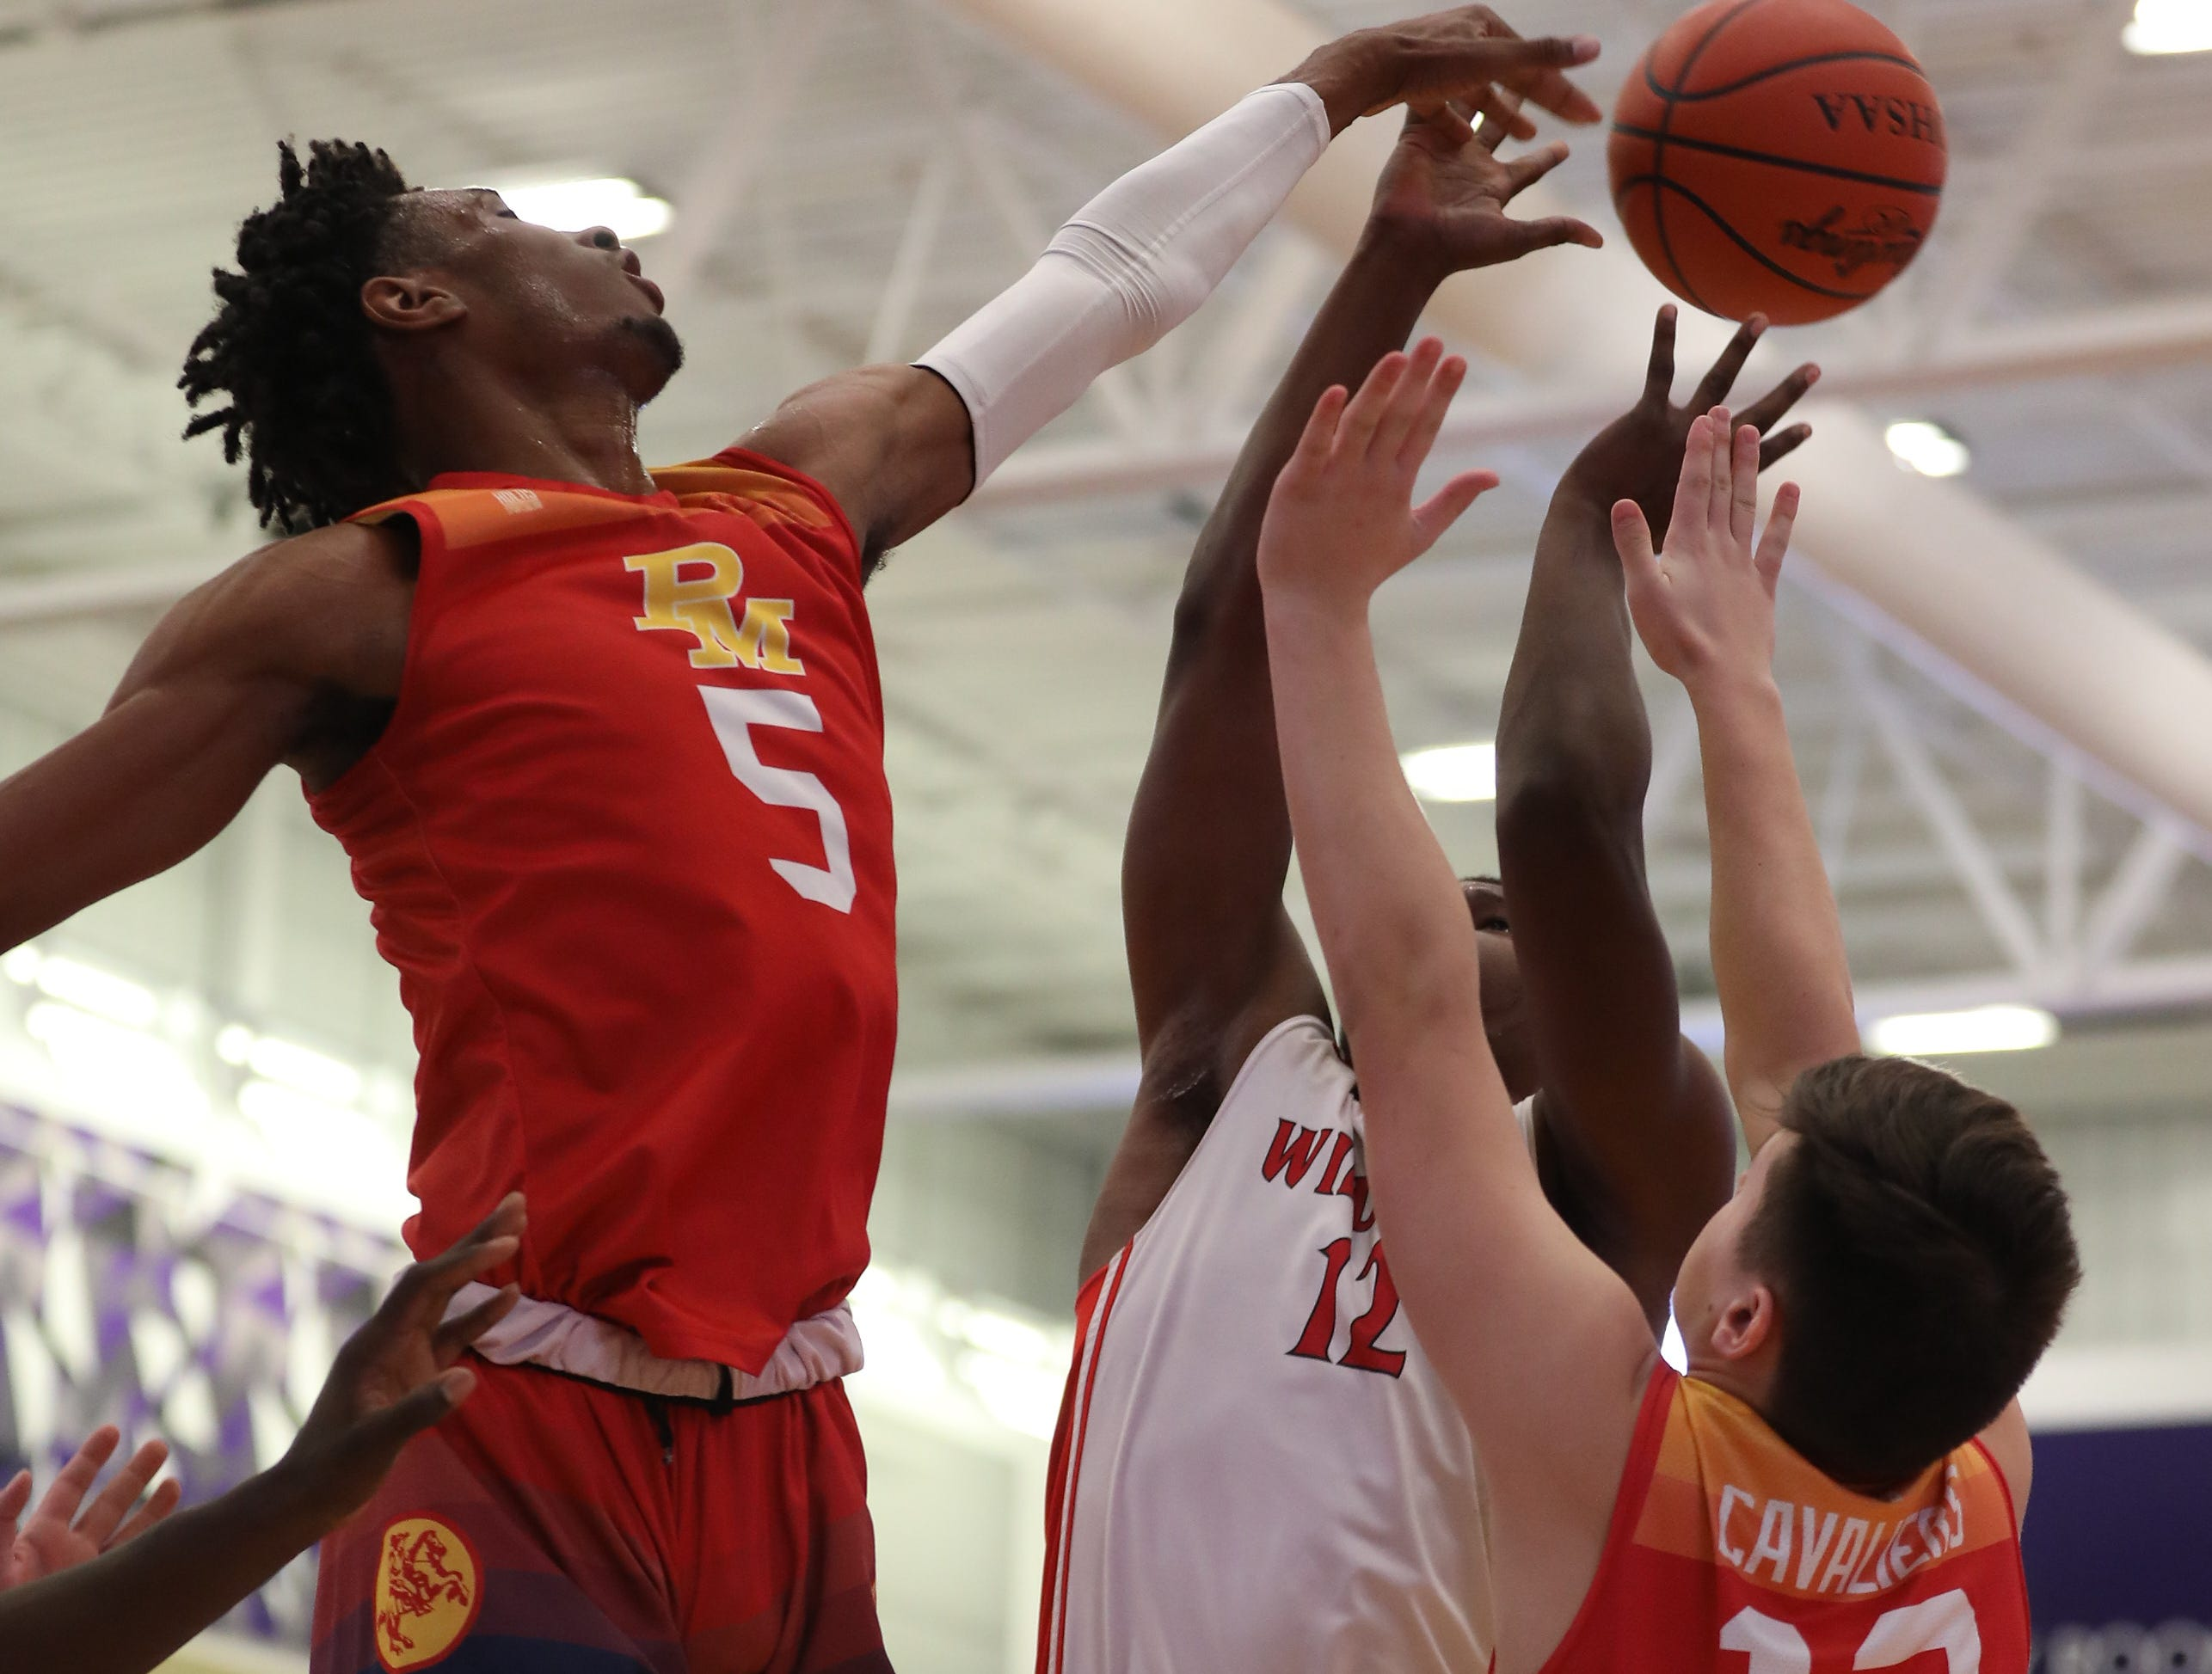 Purcell Marian forward A.J. Garrett (5) blocks a shot by Deer Park's DeShaun McEntire during their basketball game at the Midwest King Classic at Wade E Miller Gymnasium Sunday, Jan. 20, 2019.